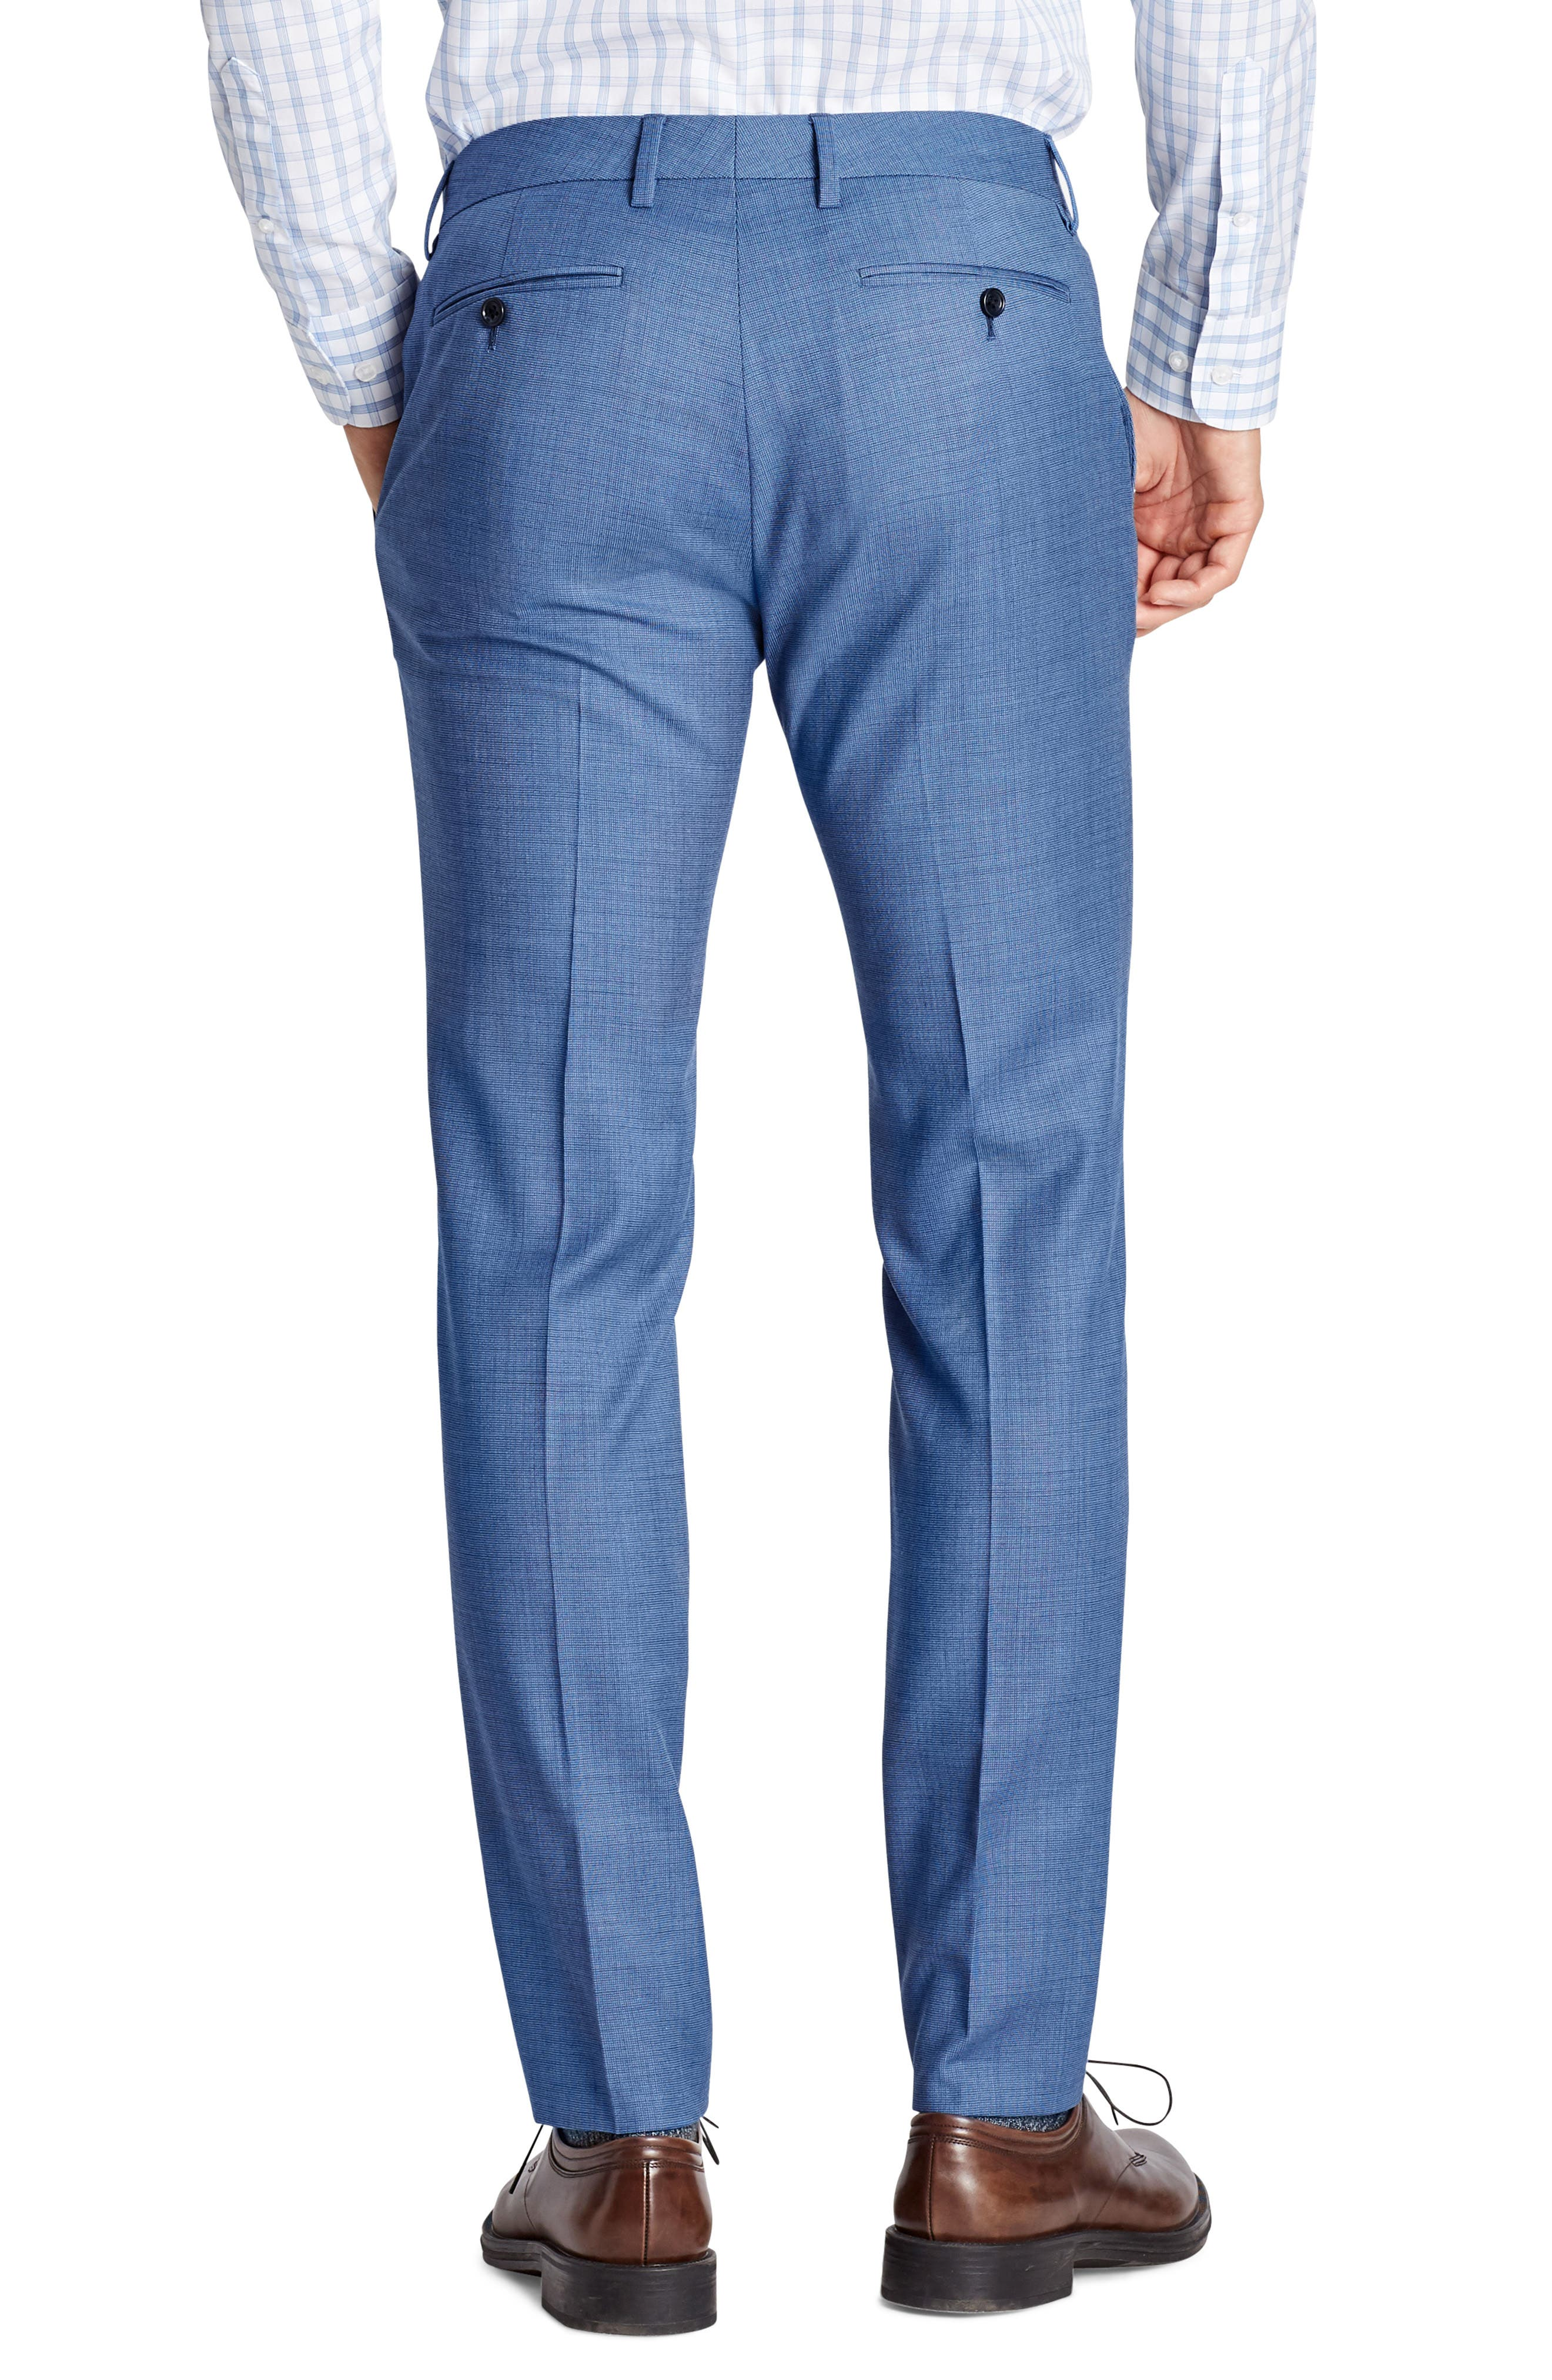 BONOBOS, Jetsetter Flat Front Solid Stretch Wool Trousers, Alternate thumbnail 2, color, BRIGHTER BLUE